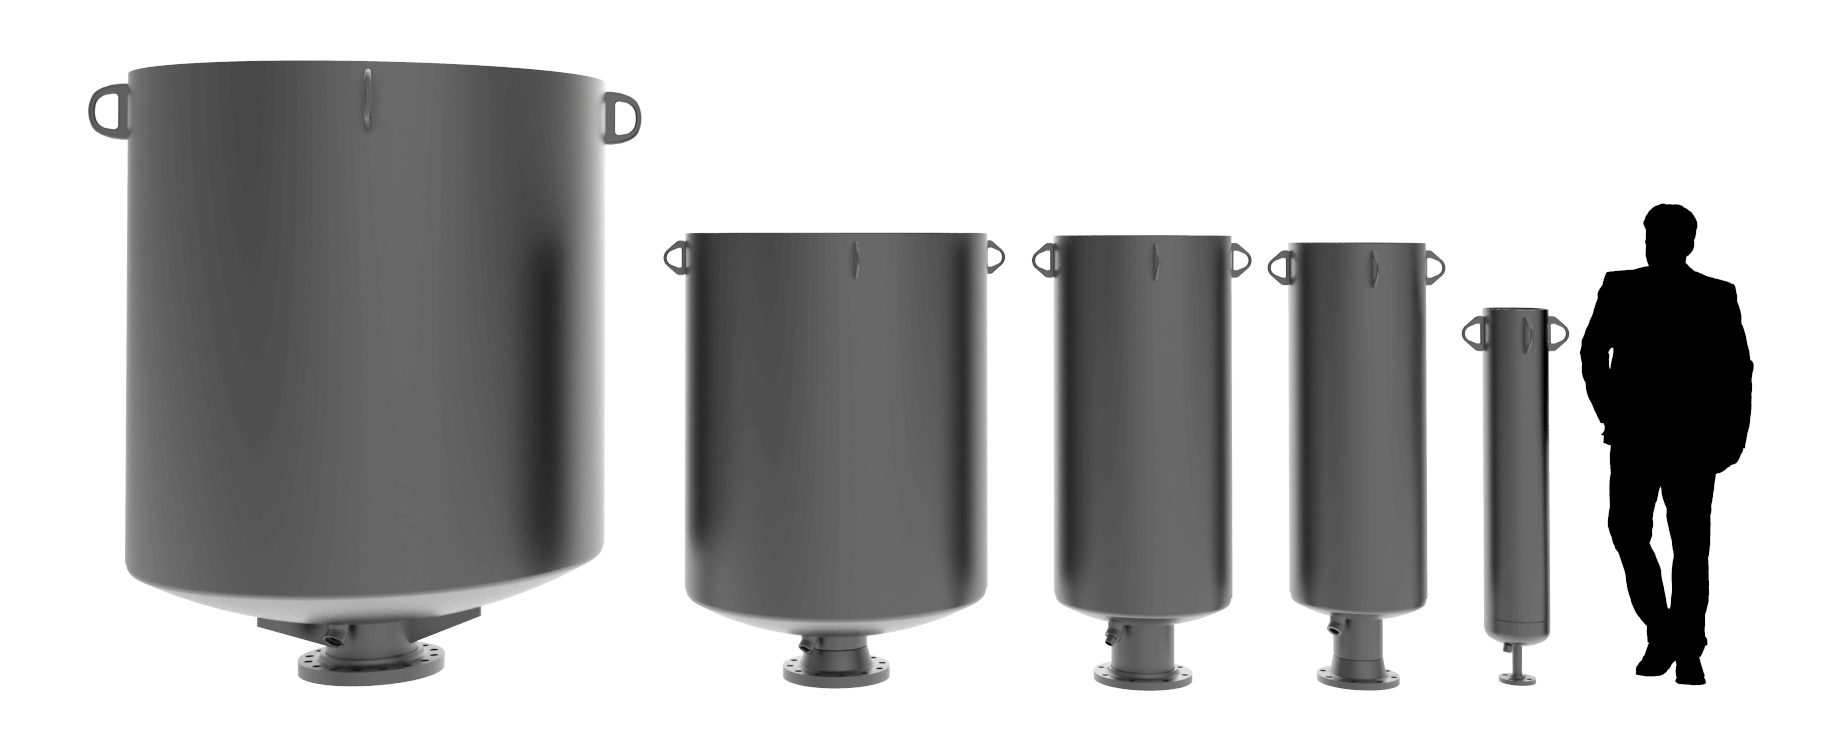 Blowdown Vent Silencer Size Comparison Compressed.png